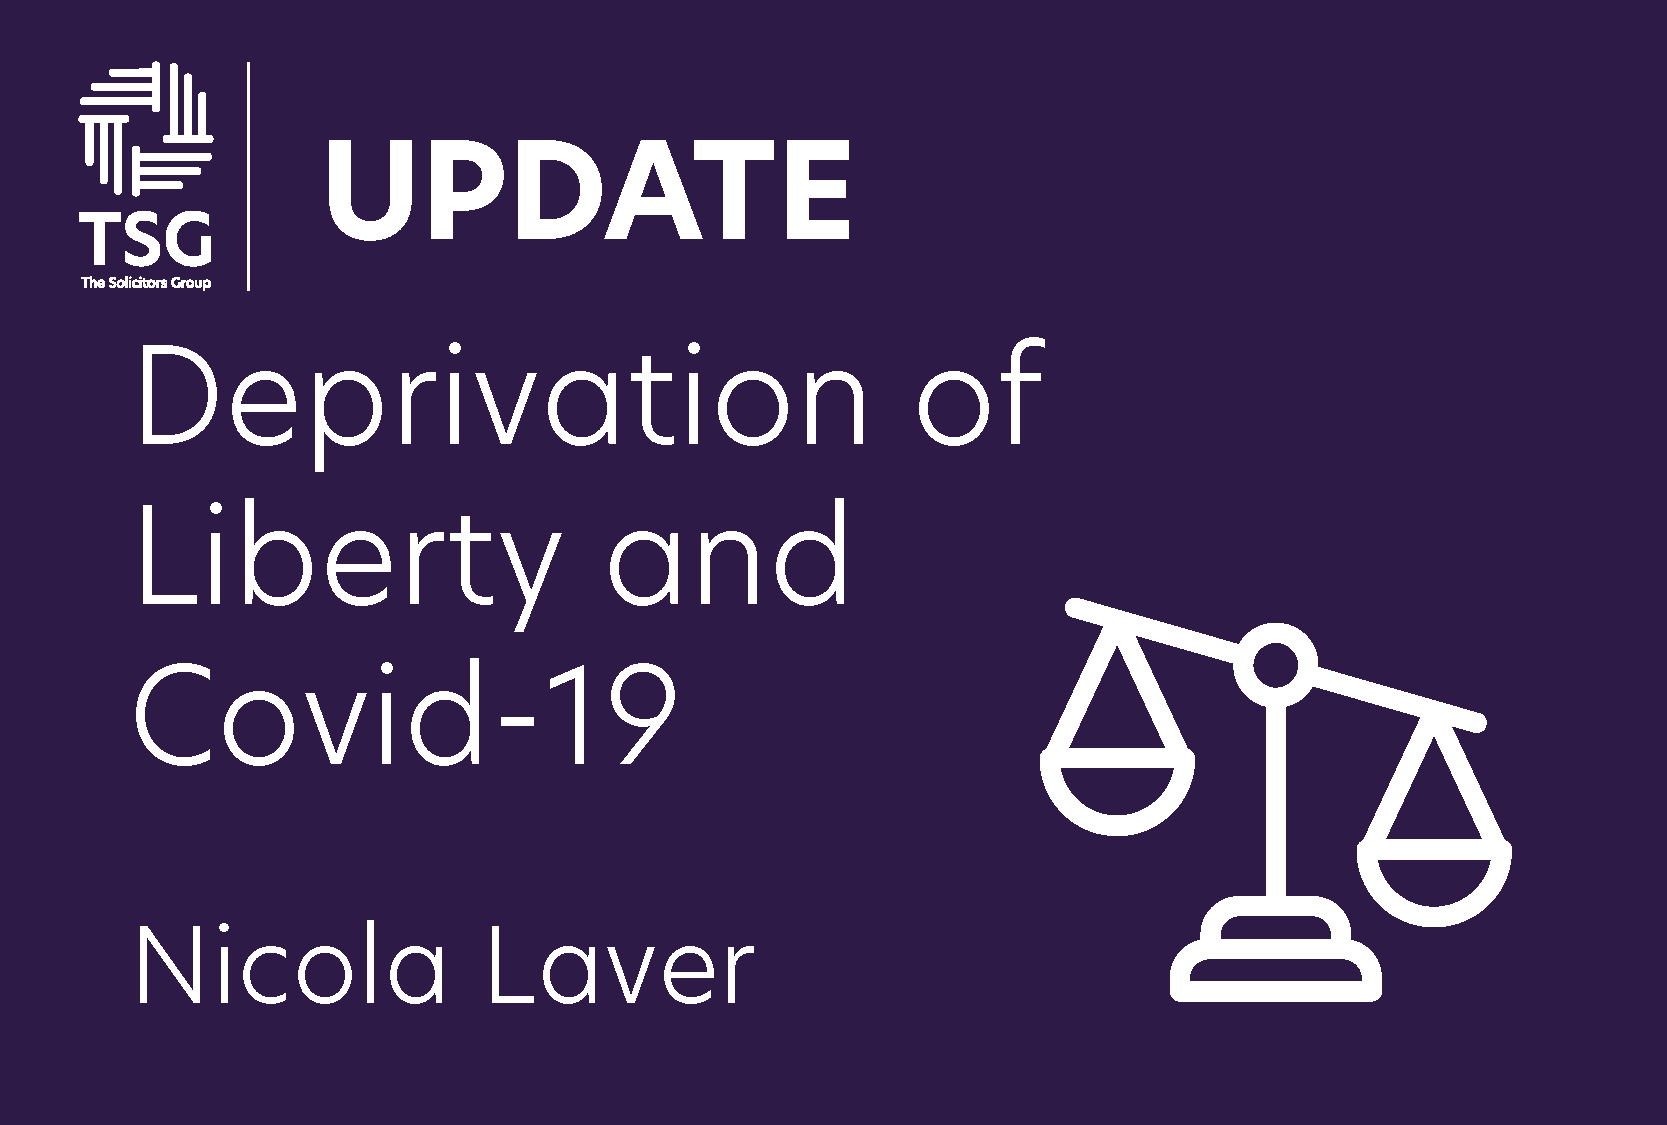 Deprivation of Liberty and Covid 19